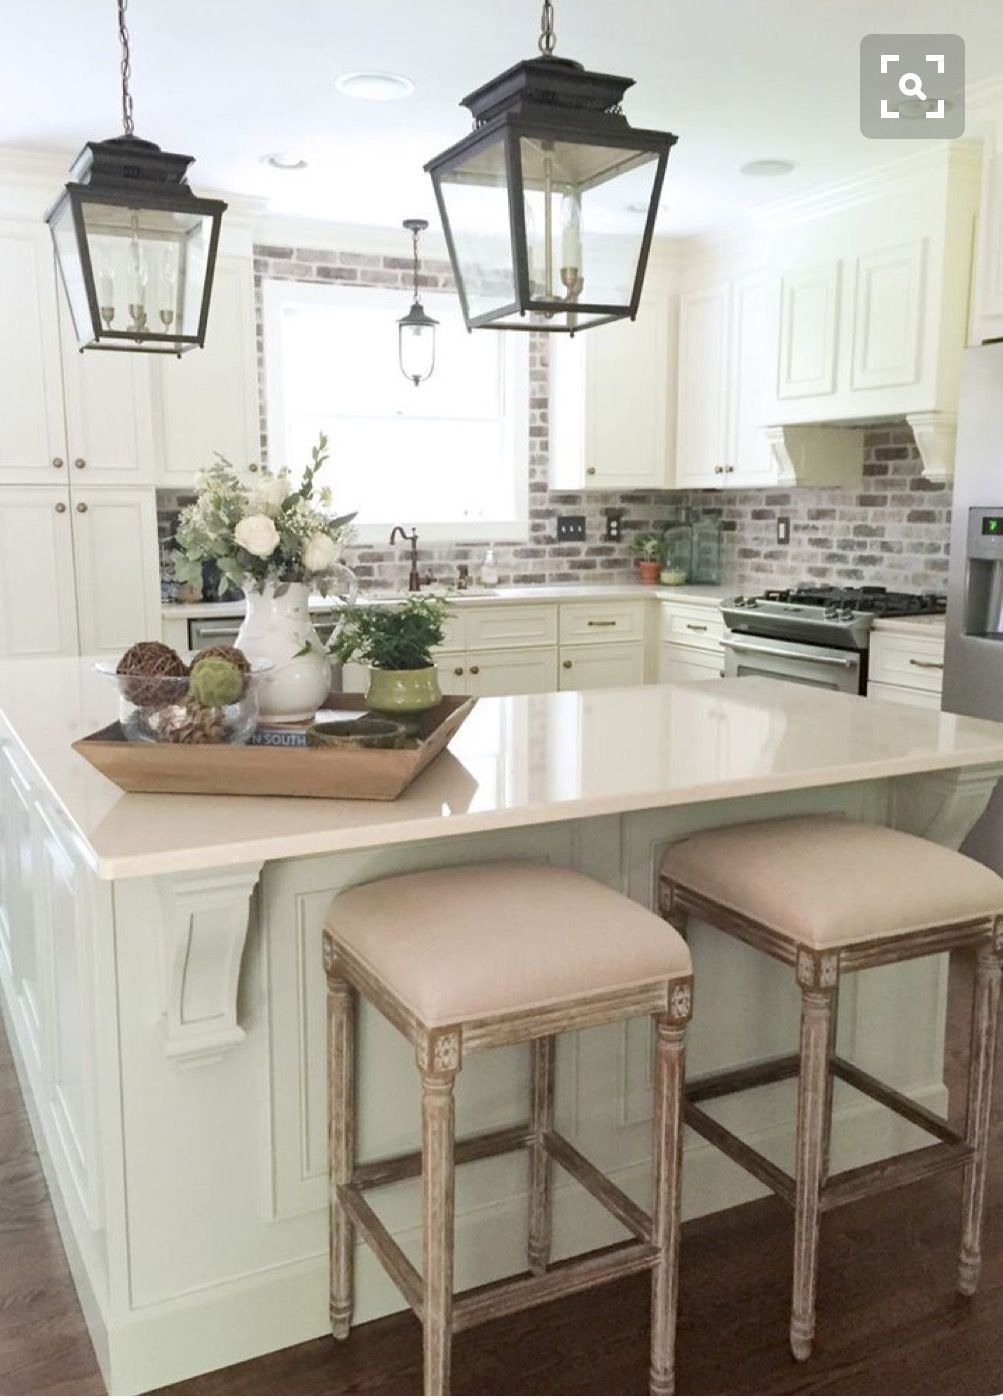 Pin by Nicole Salter on Kitchen | Pinterest | Kitchens, House and ...